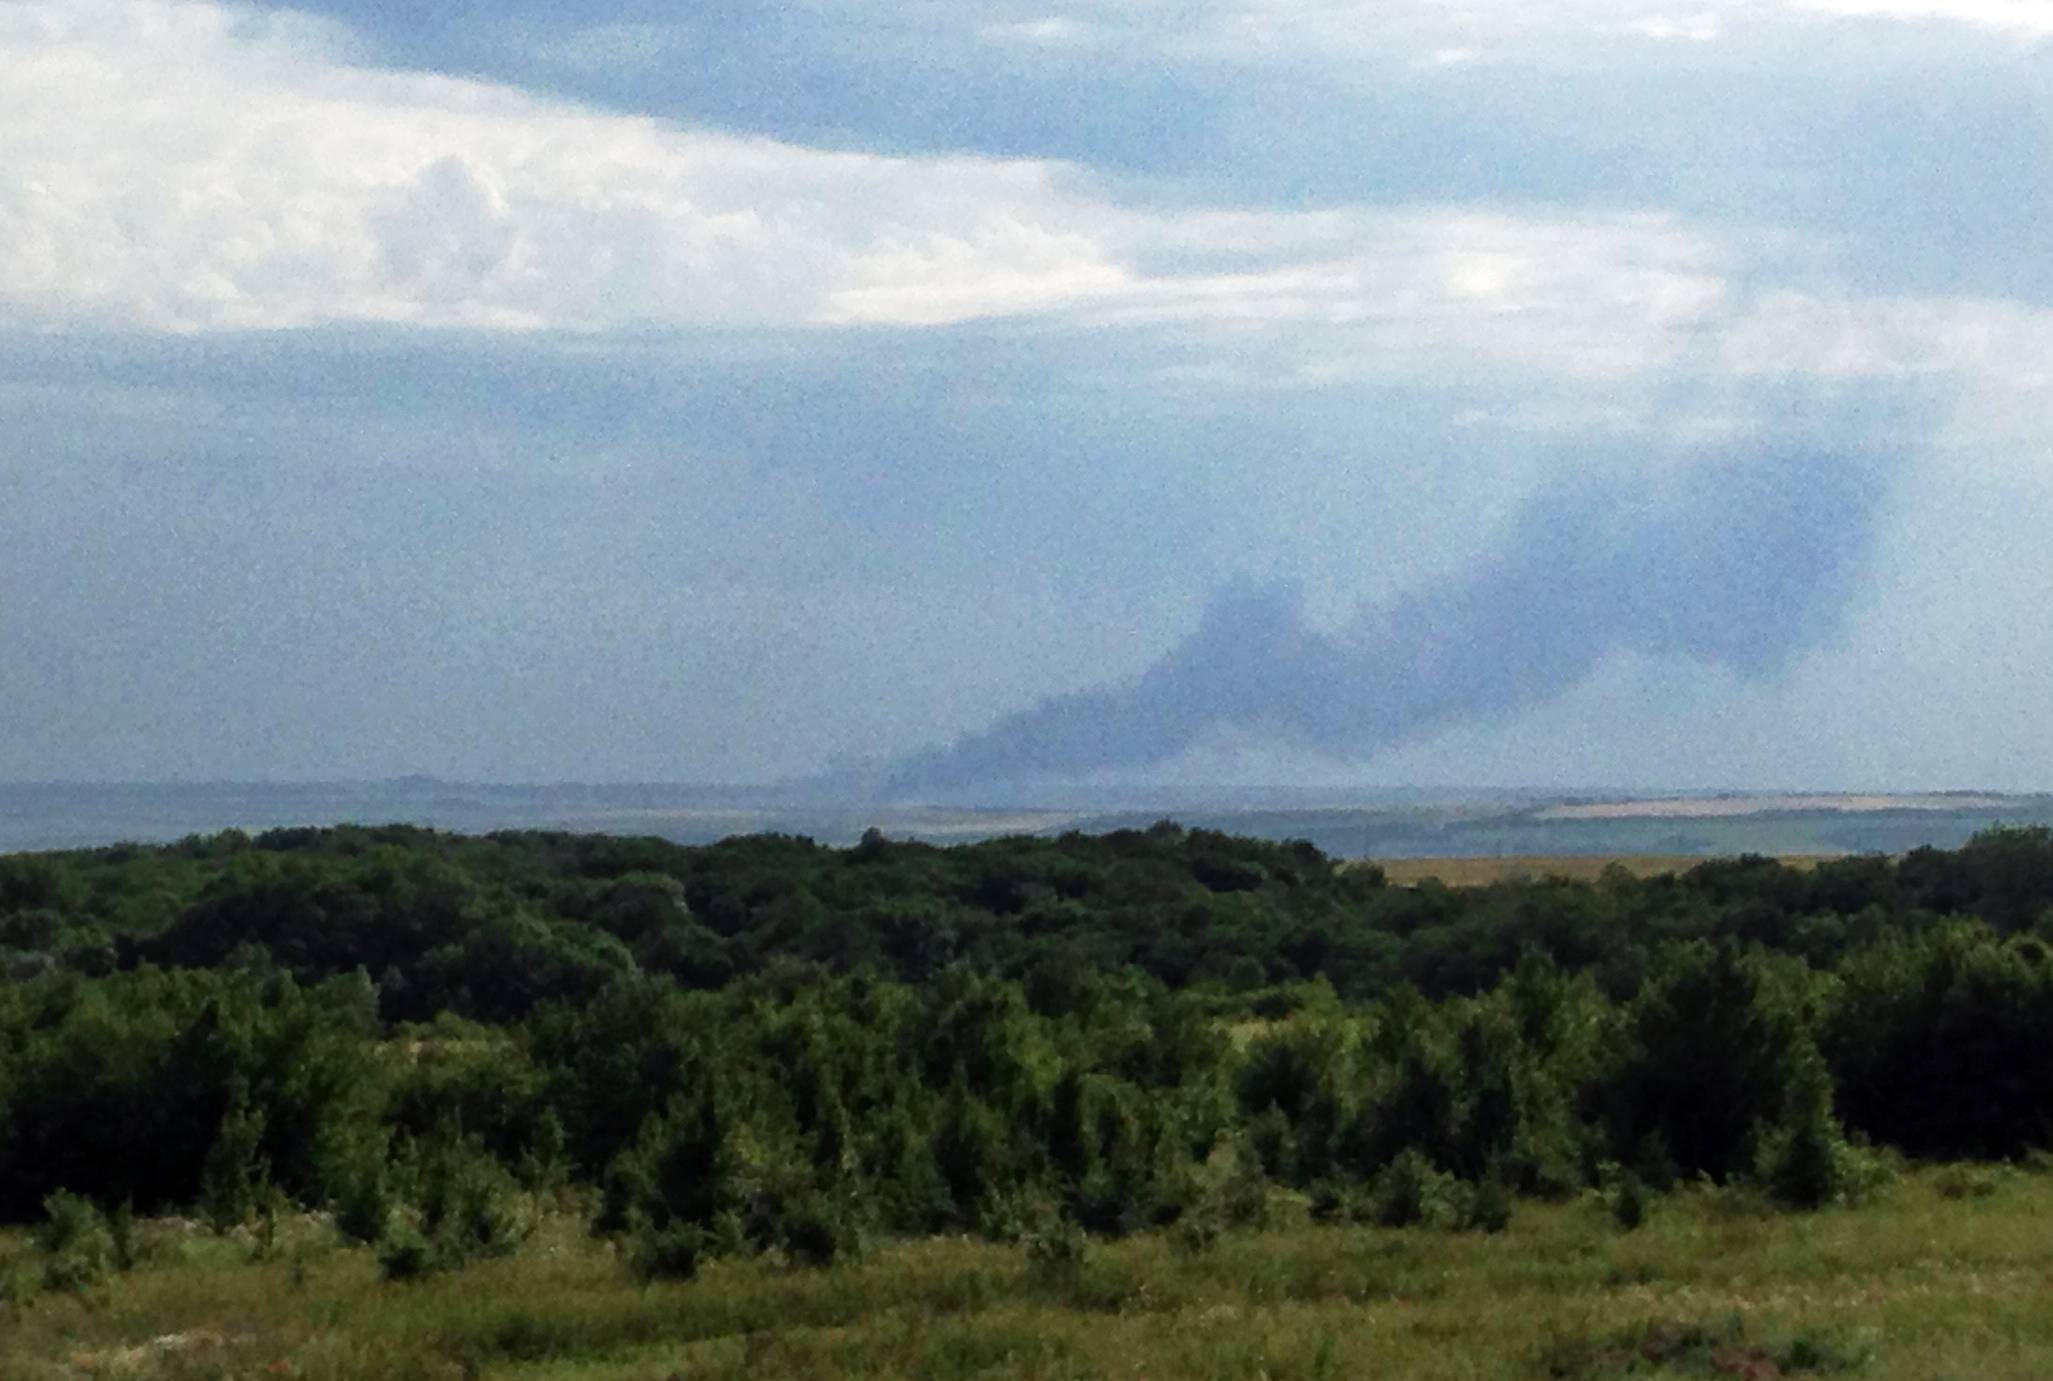 In this July 17 mobile phone photo provided by Andrei Kashtanov, smoke rises from the site where a Malaysia Airlines commercial plane went down in eastern Ukraine.